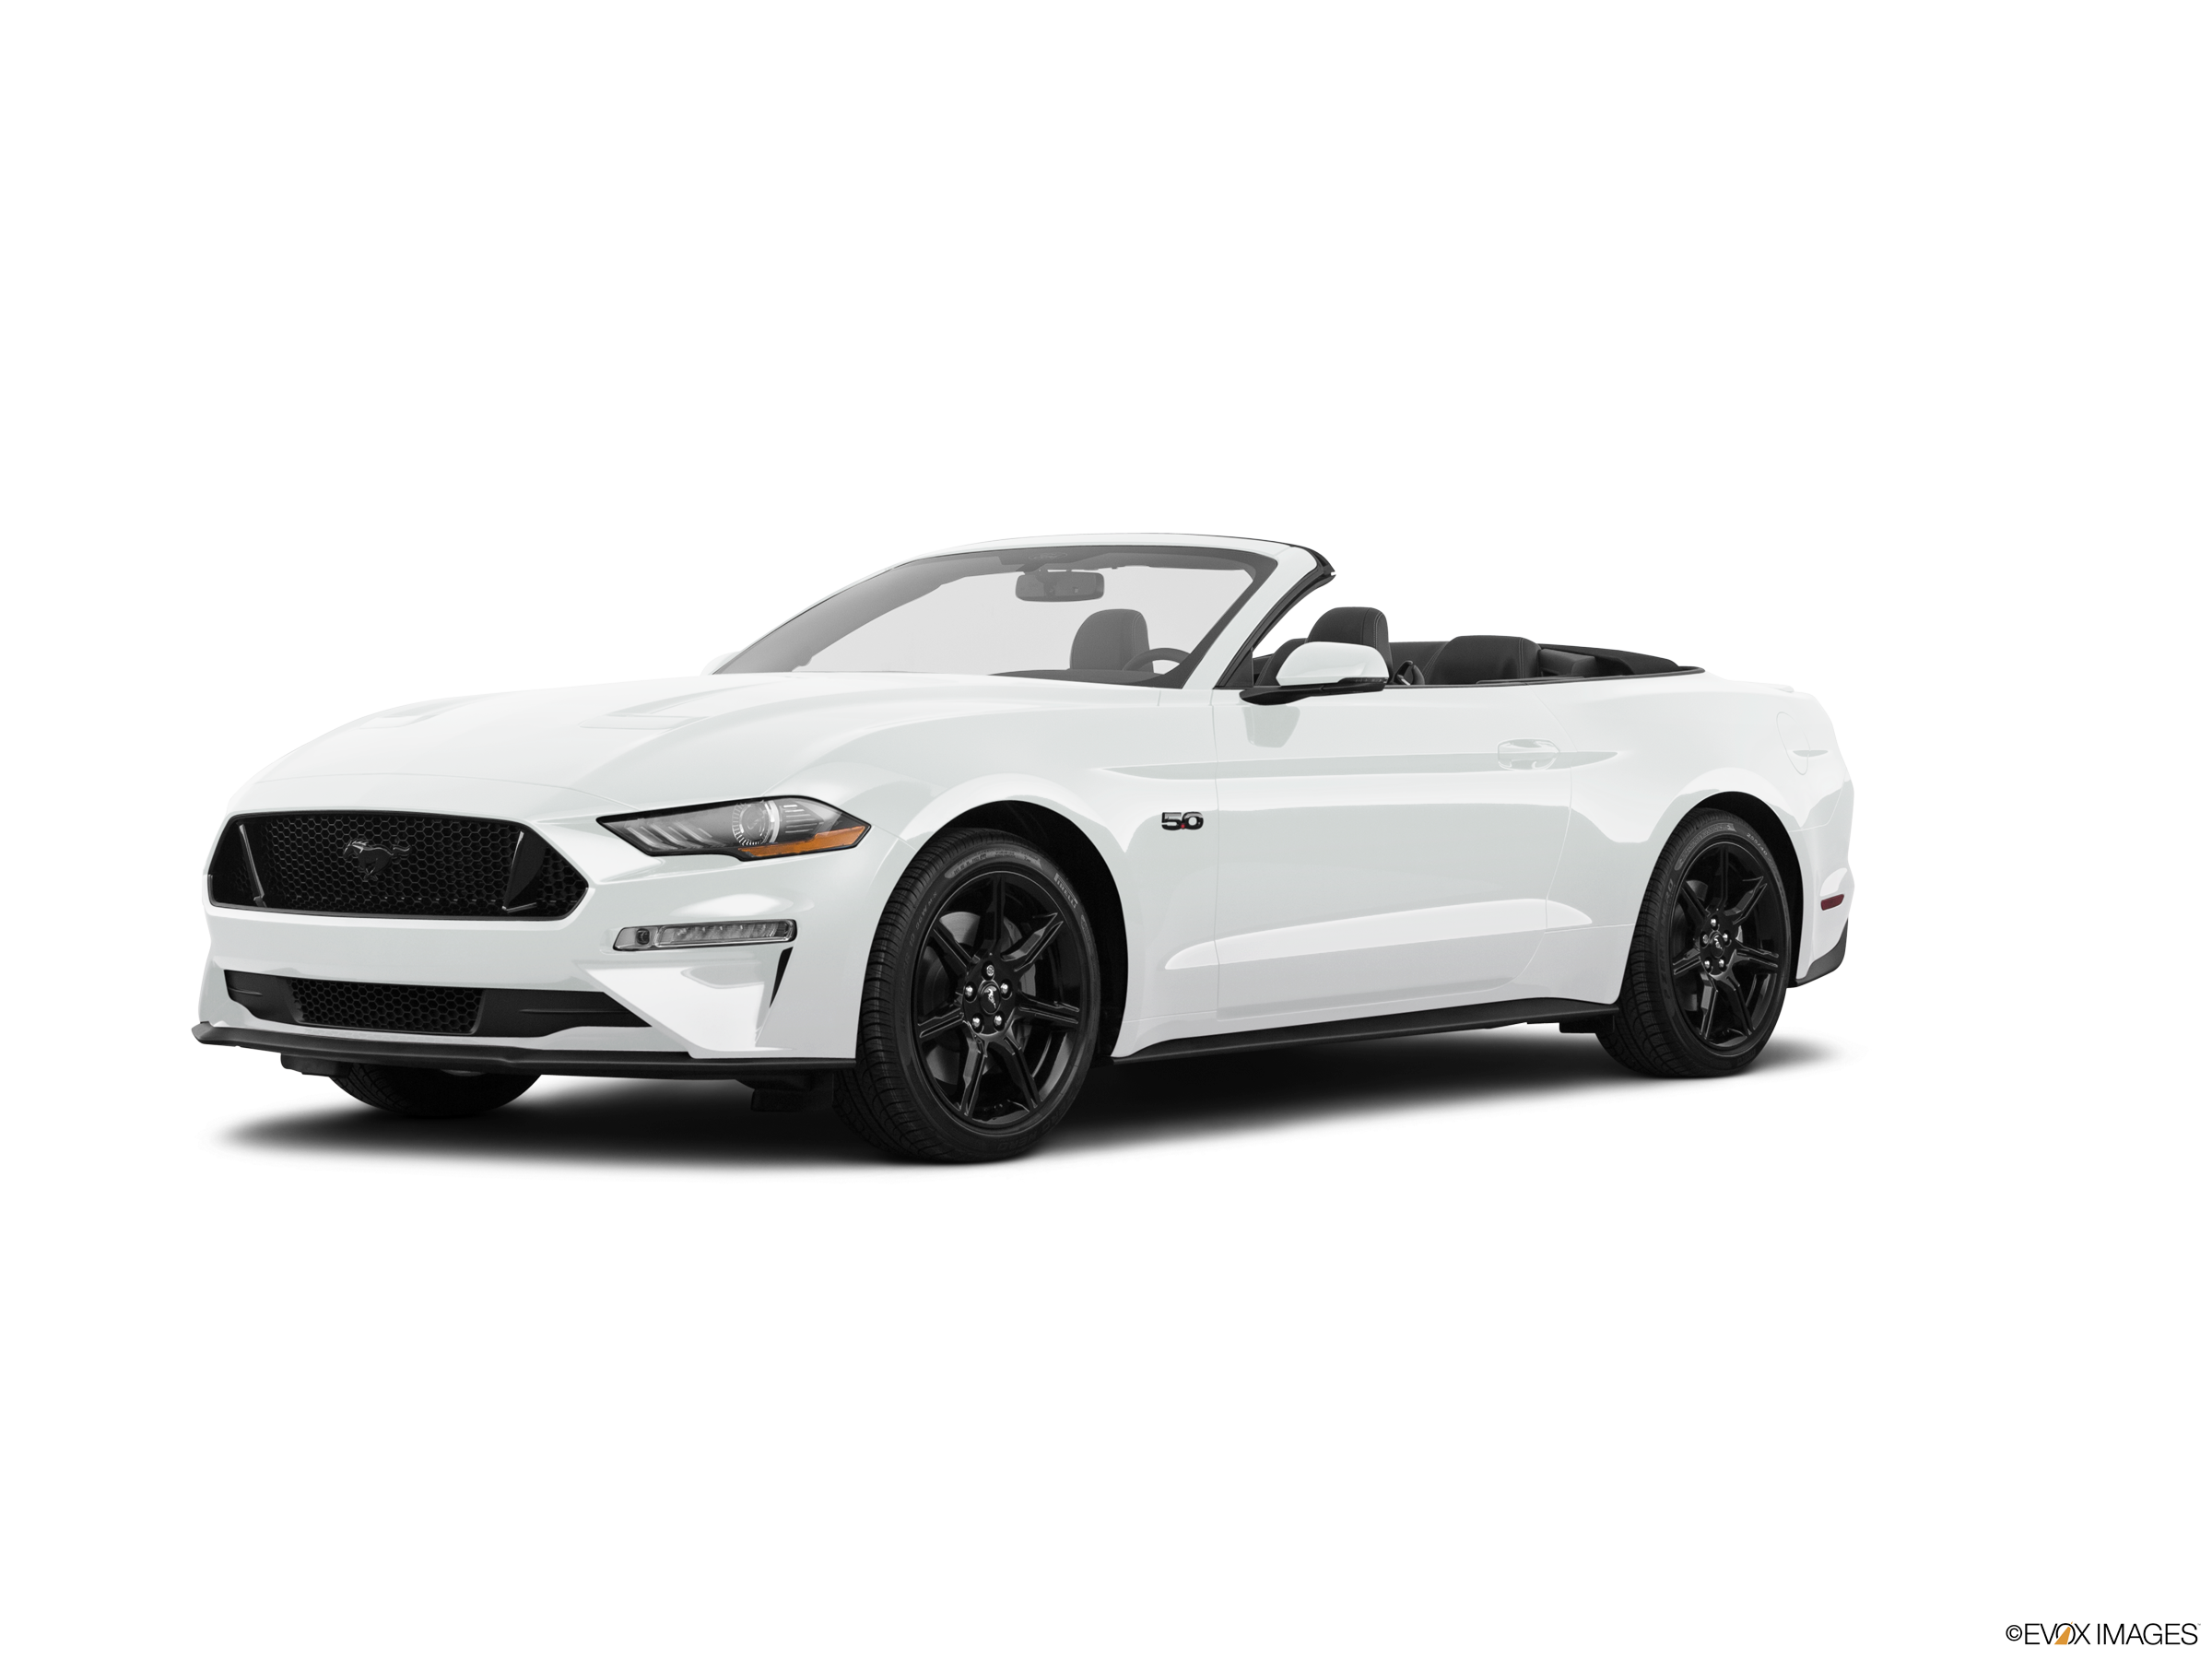 Most Popular Convertibles of 2019 - 2019 Ford Mustang